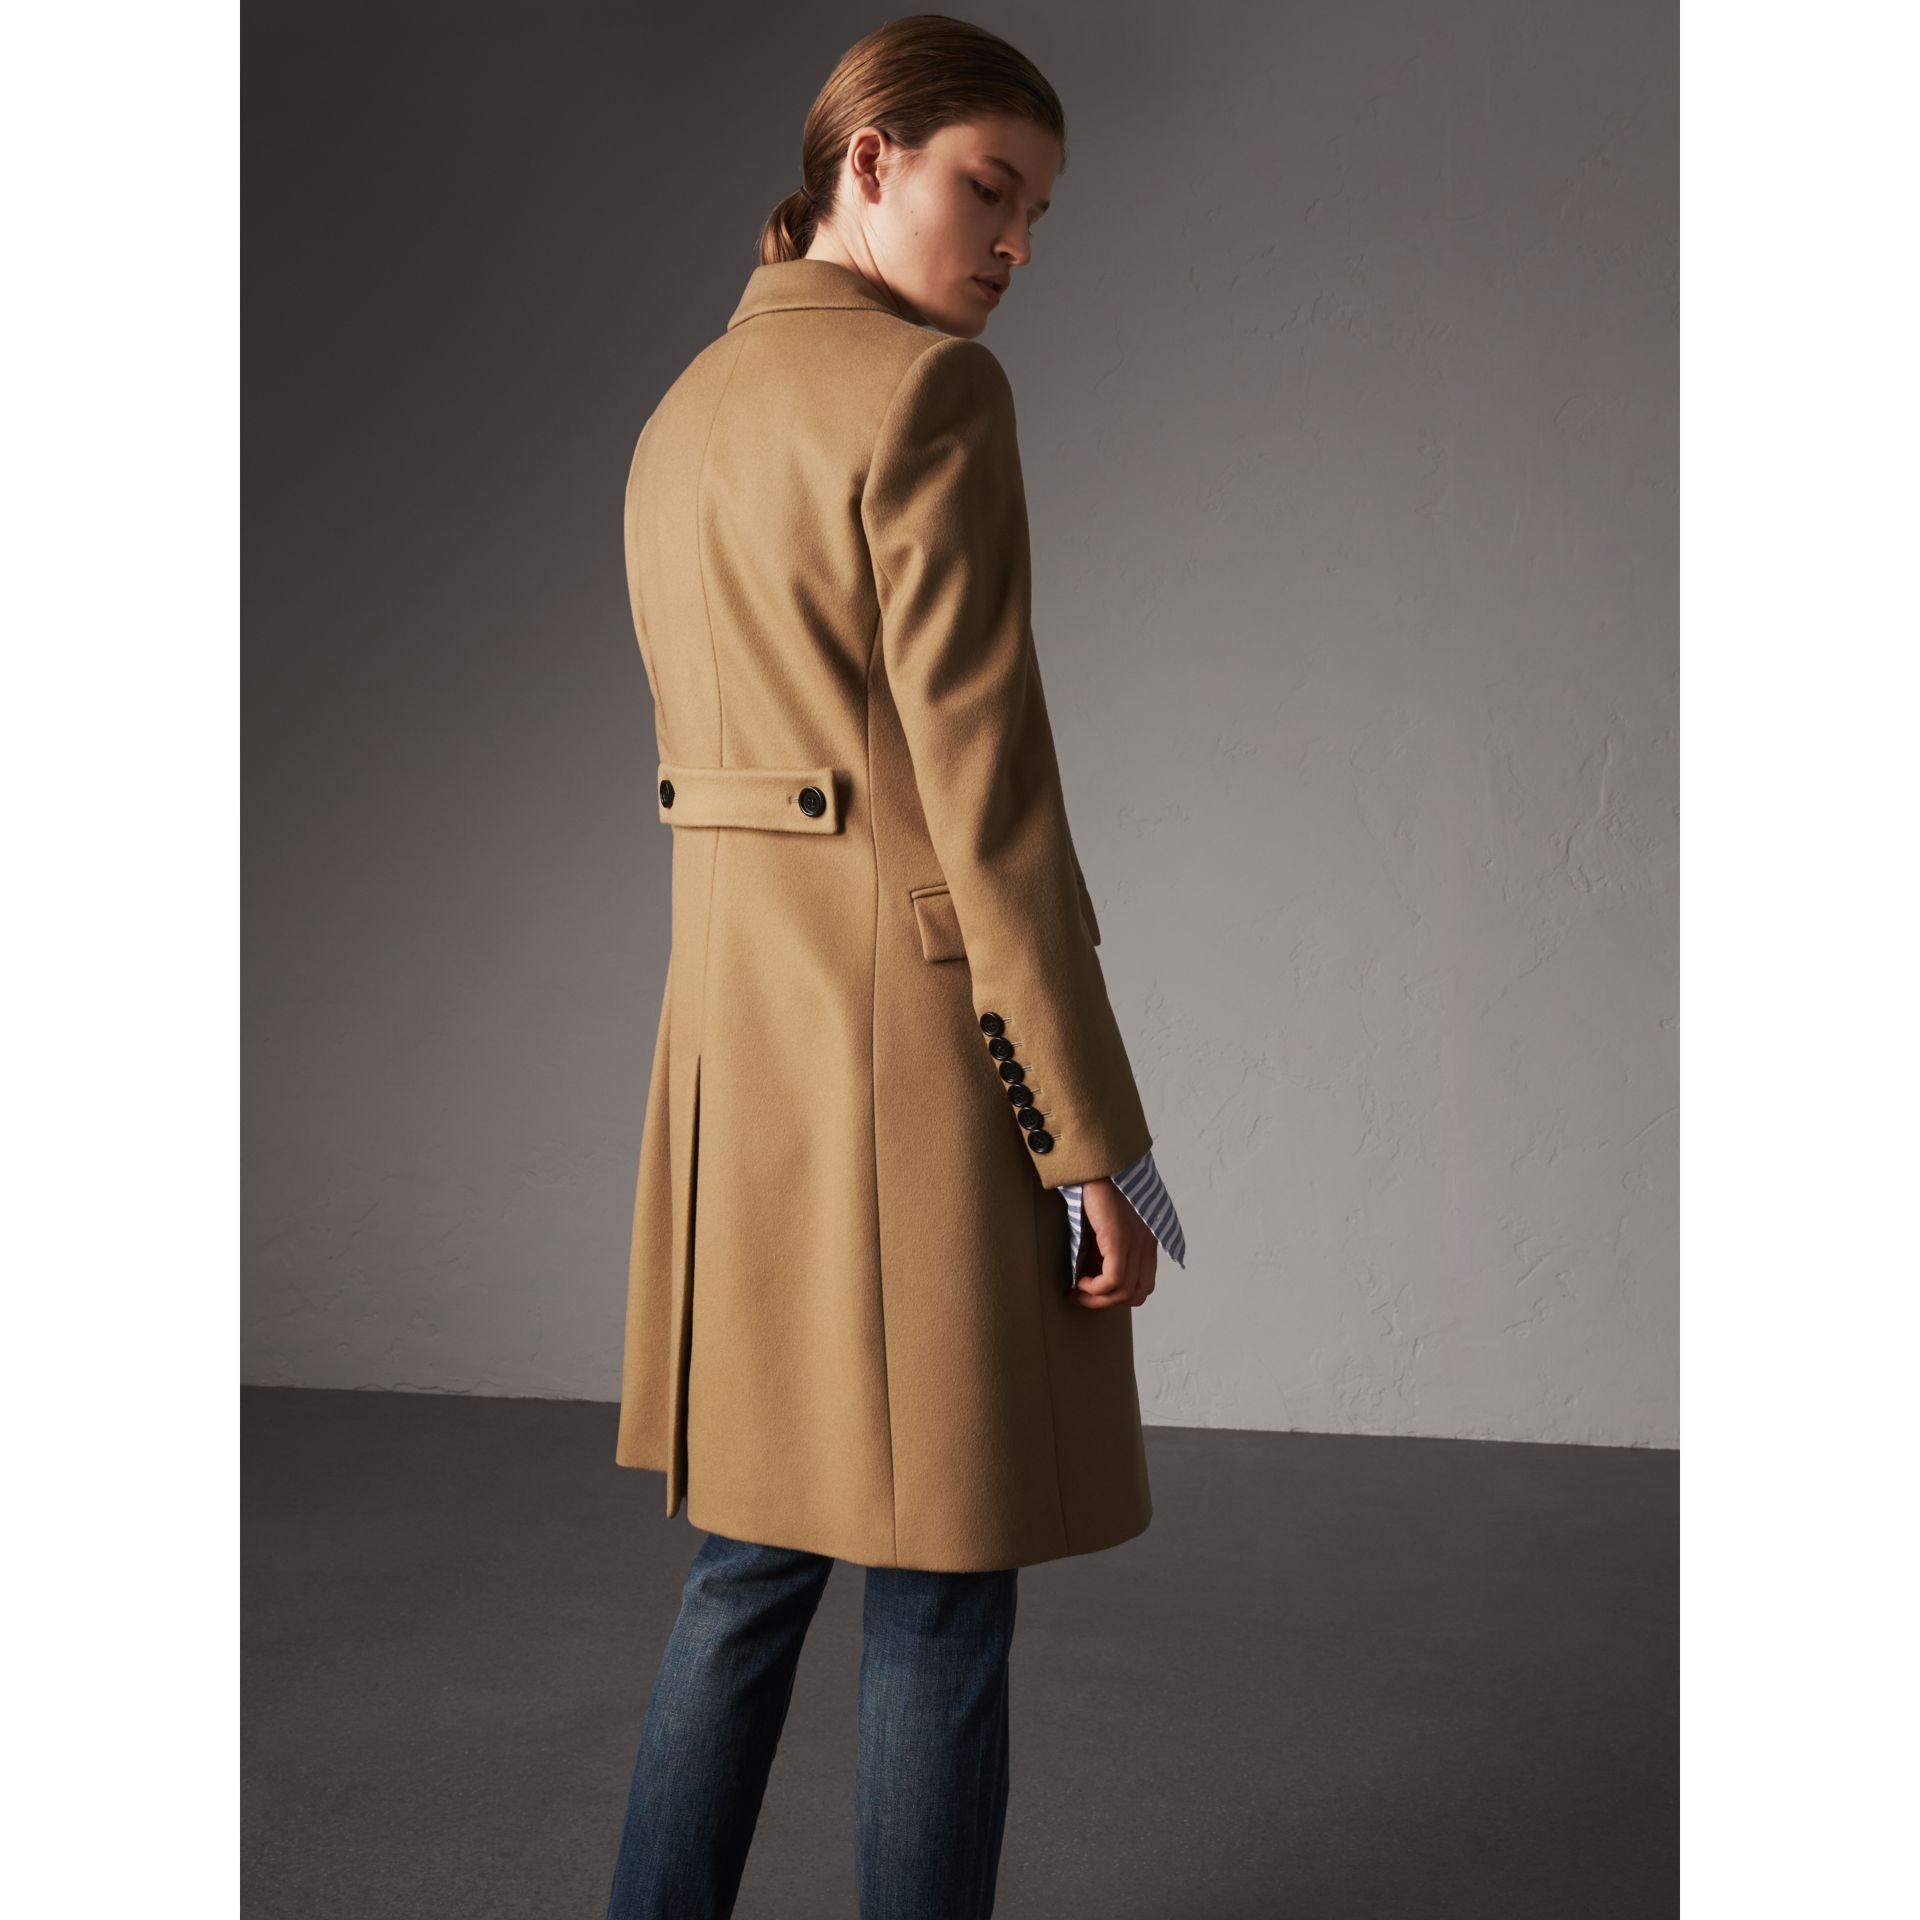 Wool Cashmere Tailored Coat in Camel - Women | Burberry Hong Kong - gallery image 3